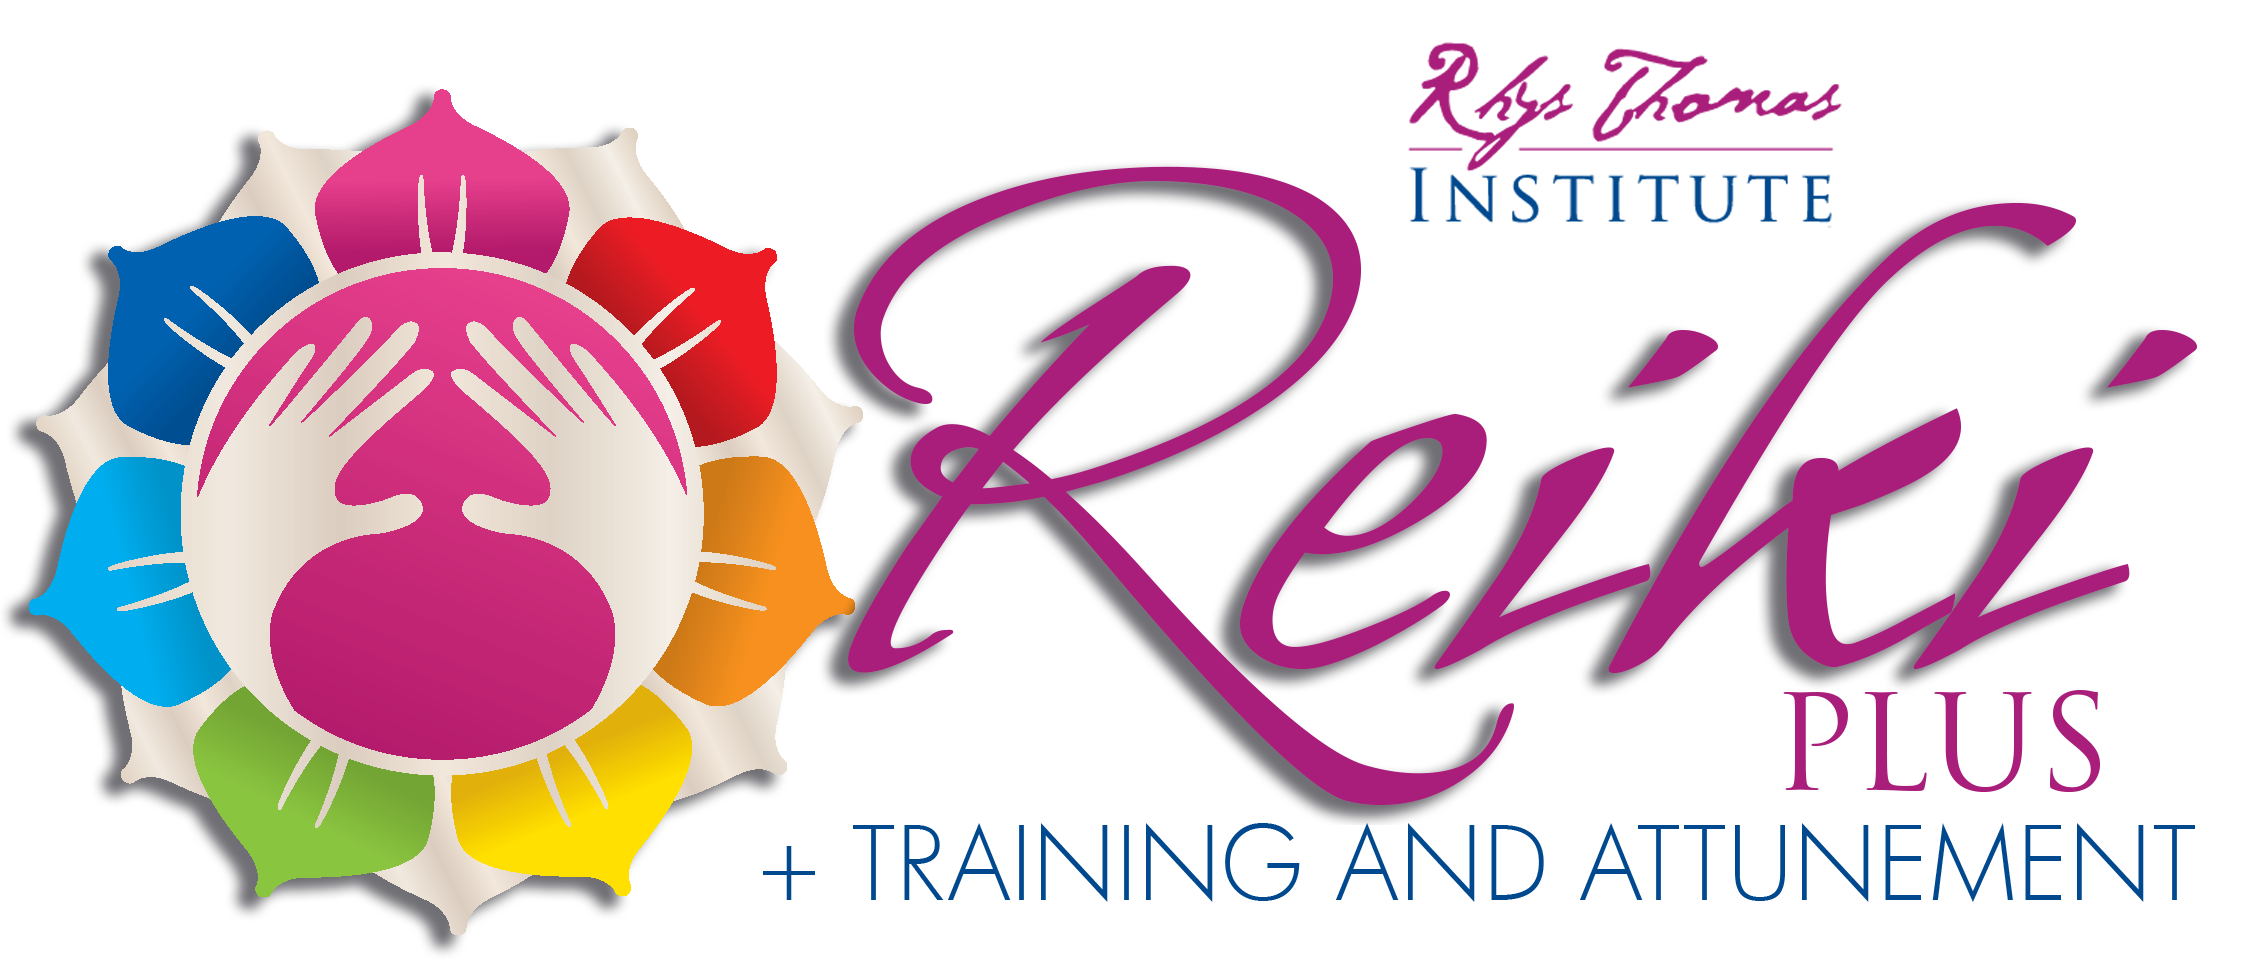 Reiki Rhys Thomas Institute Workshops